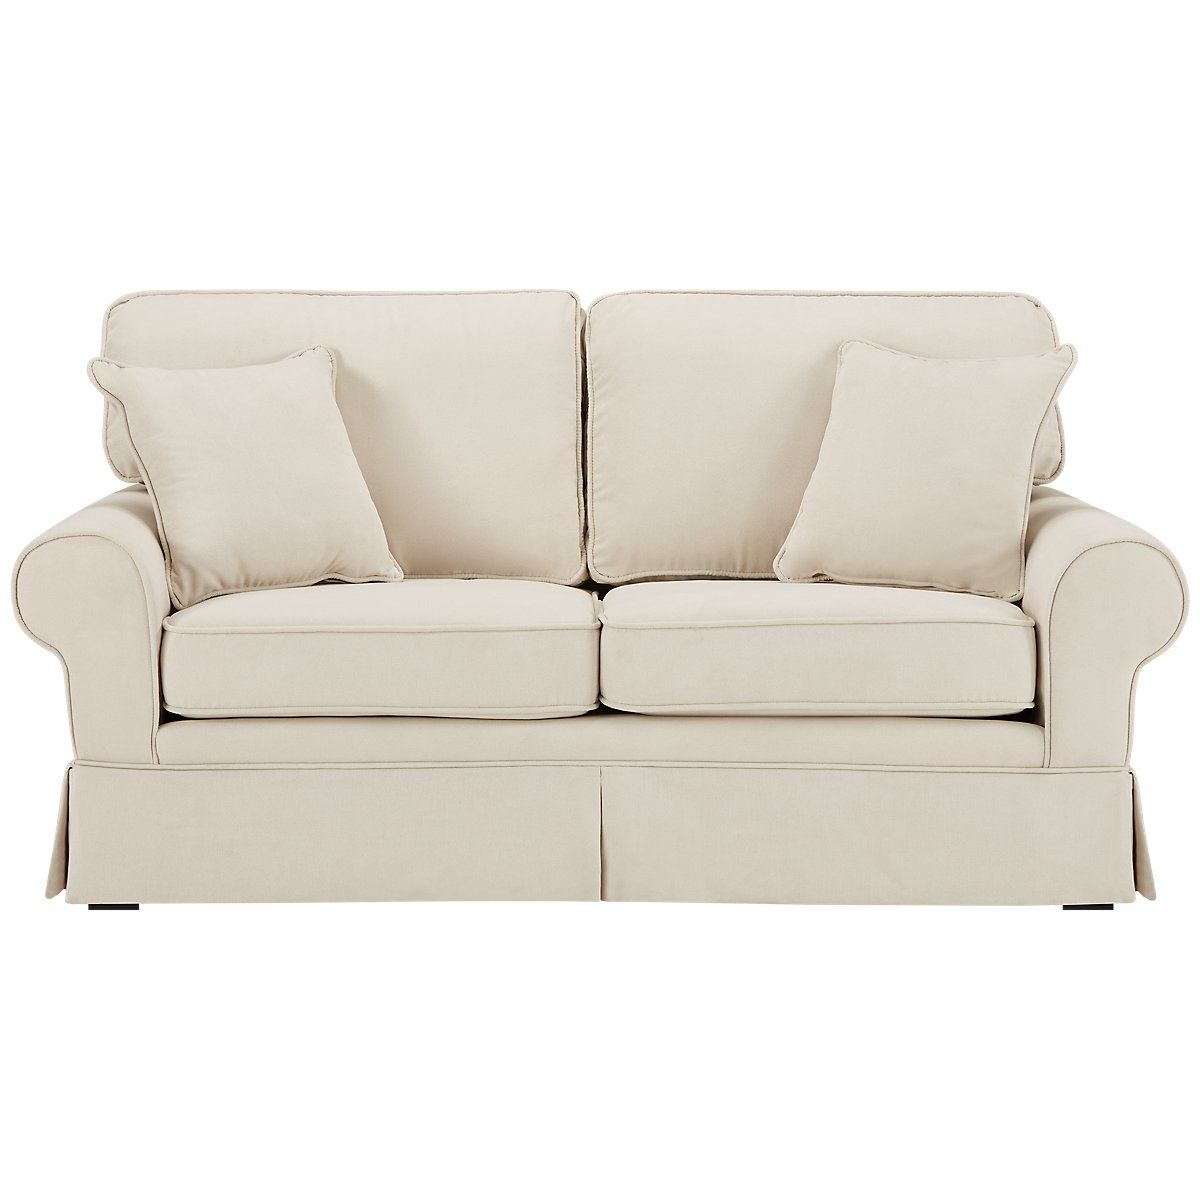 Best Reese White Fabric Sofa In 2019 Small Sofa Living Room 640 x 480